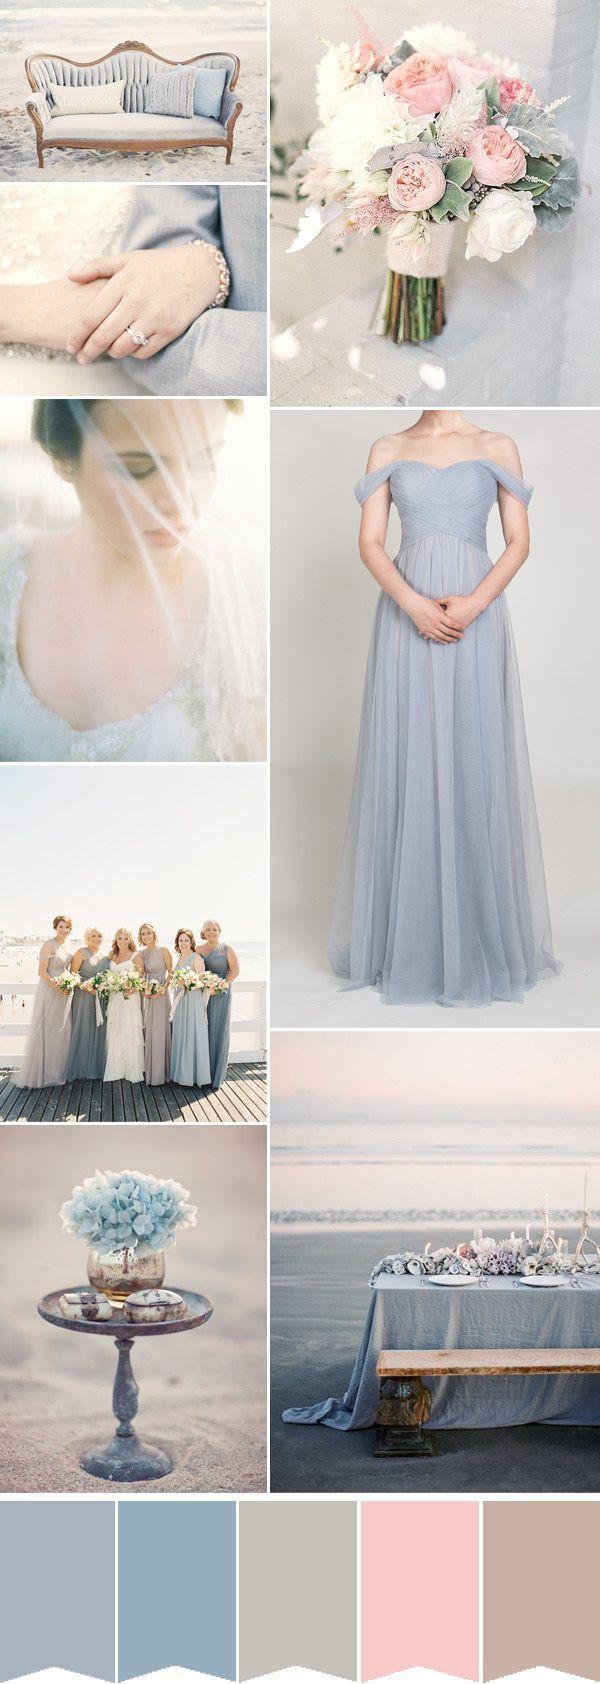 Wedding colors for a beach wedding  Fabulous Summer Beach Wedding Colors With Matched Bridesmaid Dresses